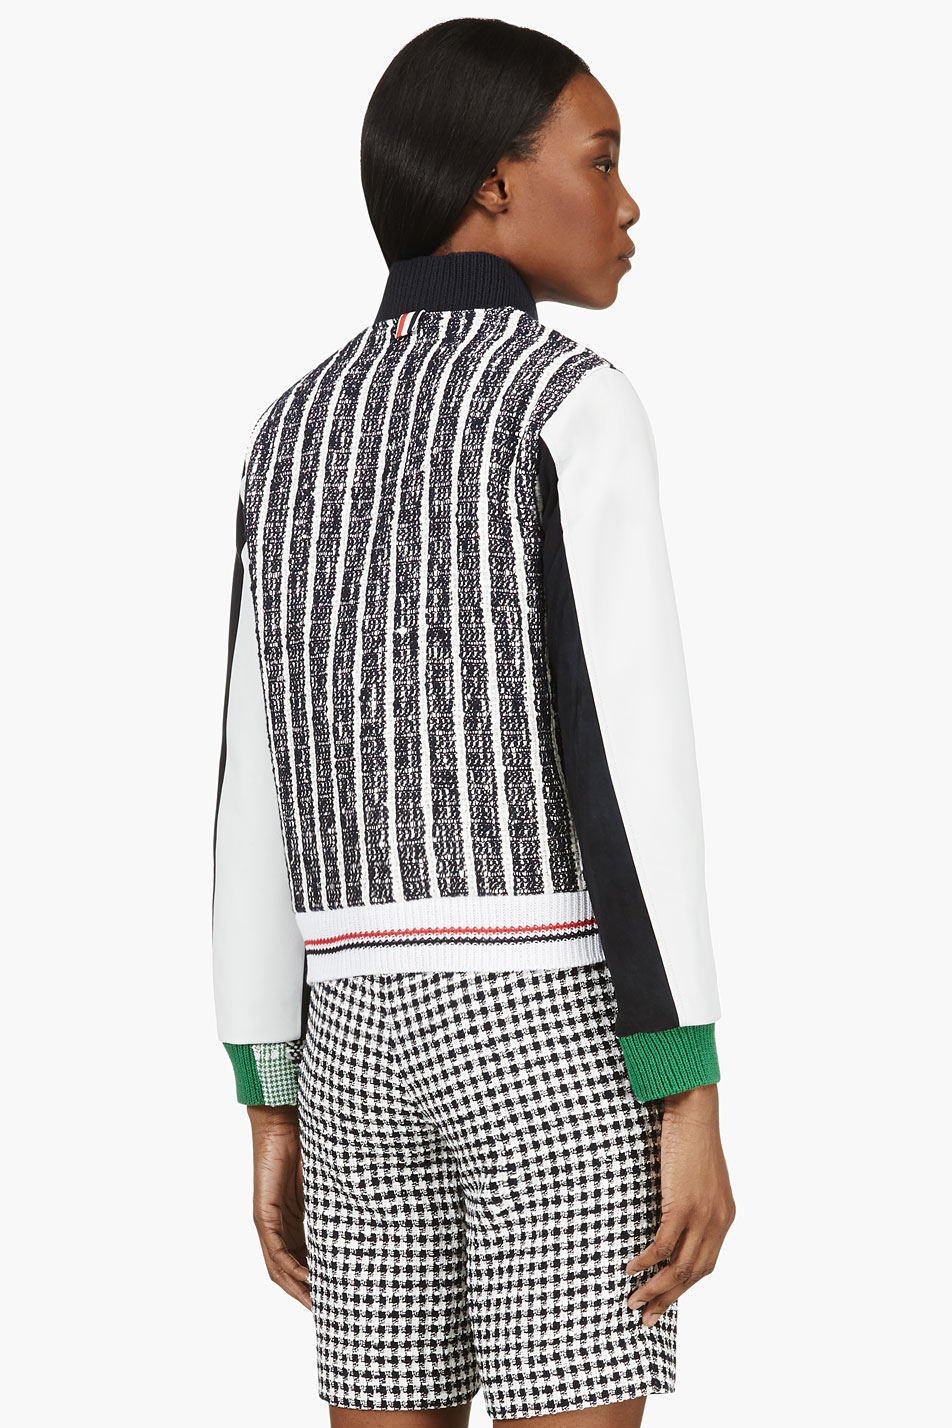 Thom browne Navy and Green Tweed Leather Sleeve Baseball Jacket in ...